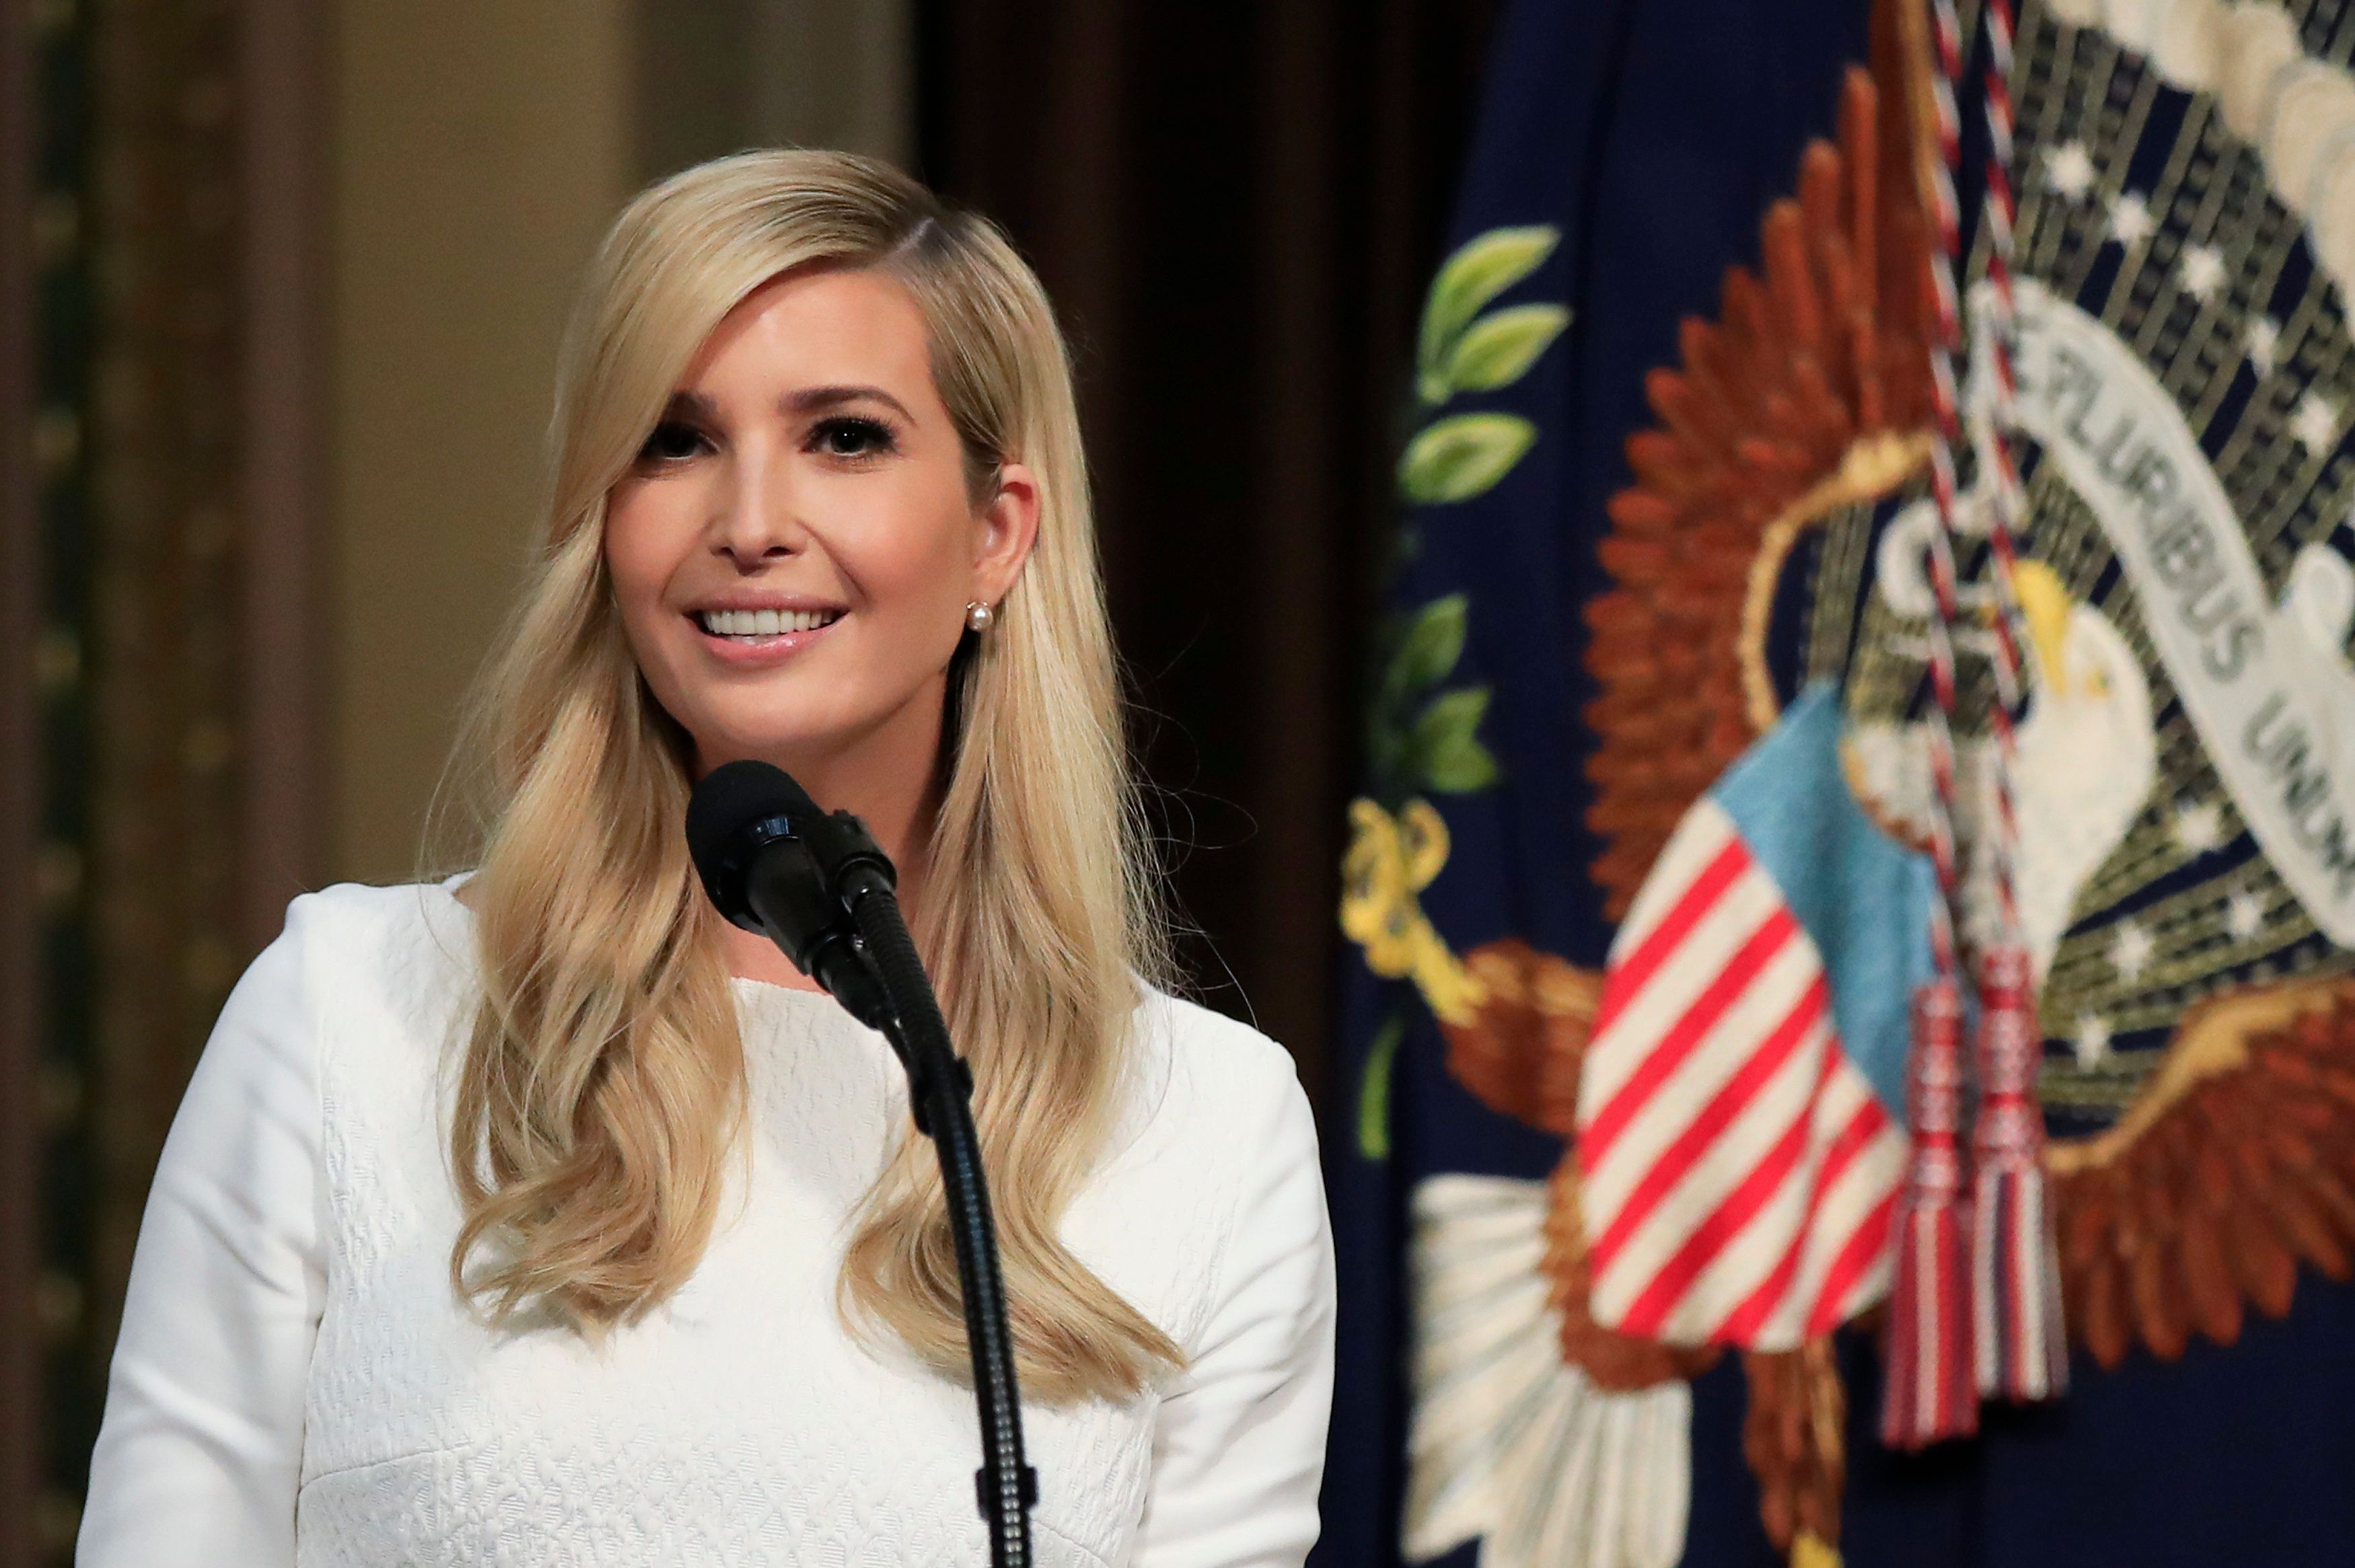 Ivanka Trump introduces her father President Donald Trump during the Interagency Task Force to Monitor and Combat Trafficking in Persons annual meeting at the Eisenhower Executive Office Building on the White House complex in Washington, Thursday, Oct. 11, 2018. (AP Photo/Manuel Balce Ceneta)